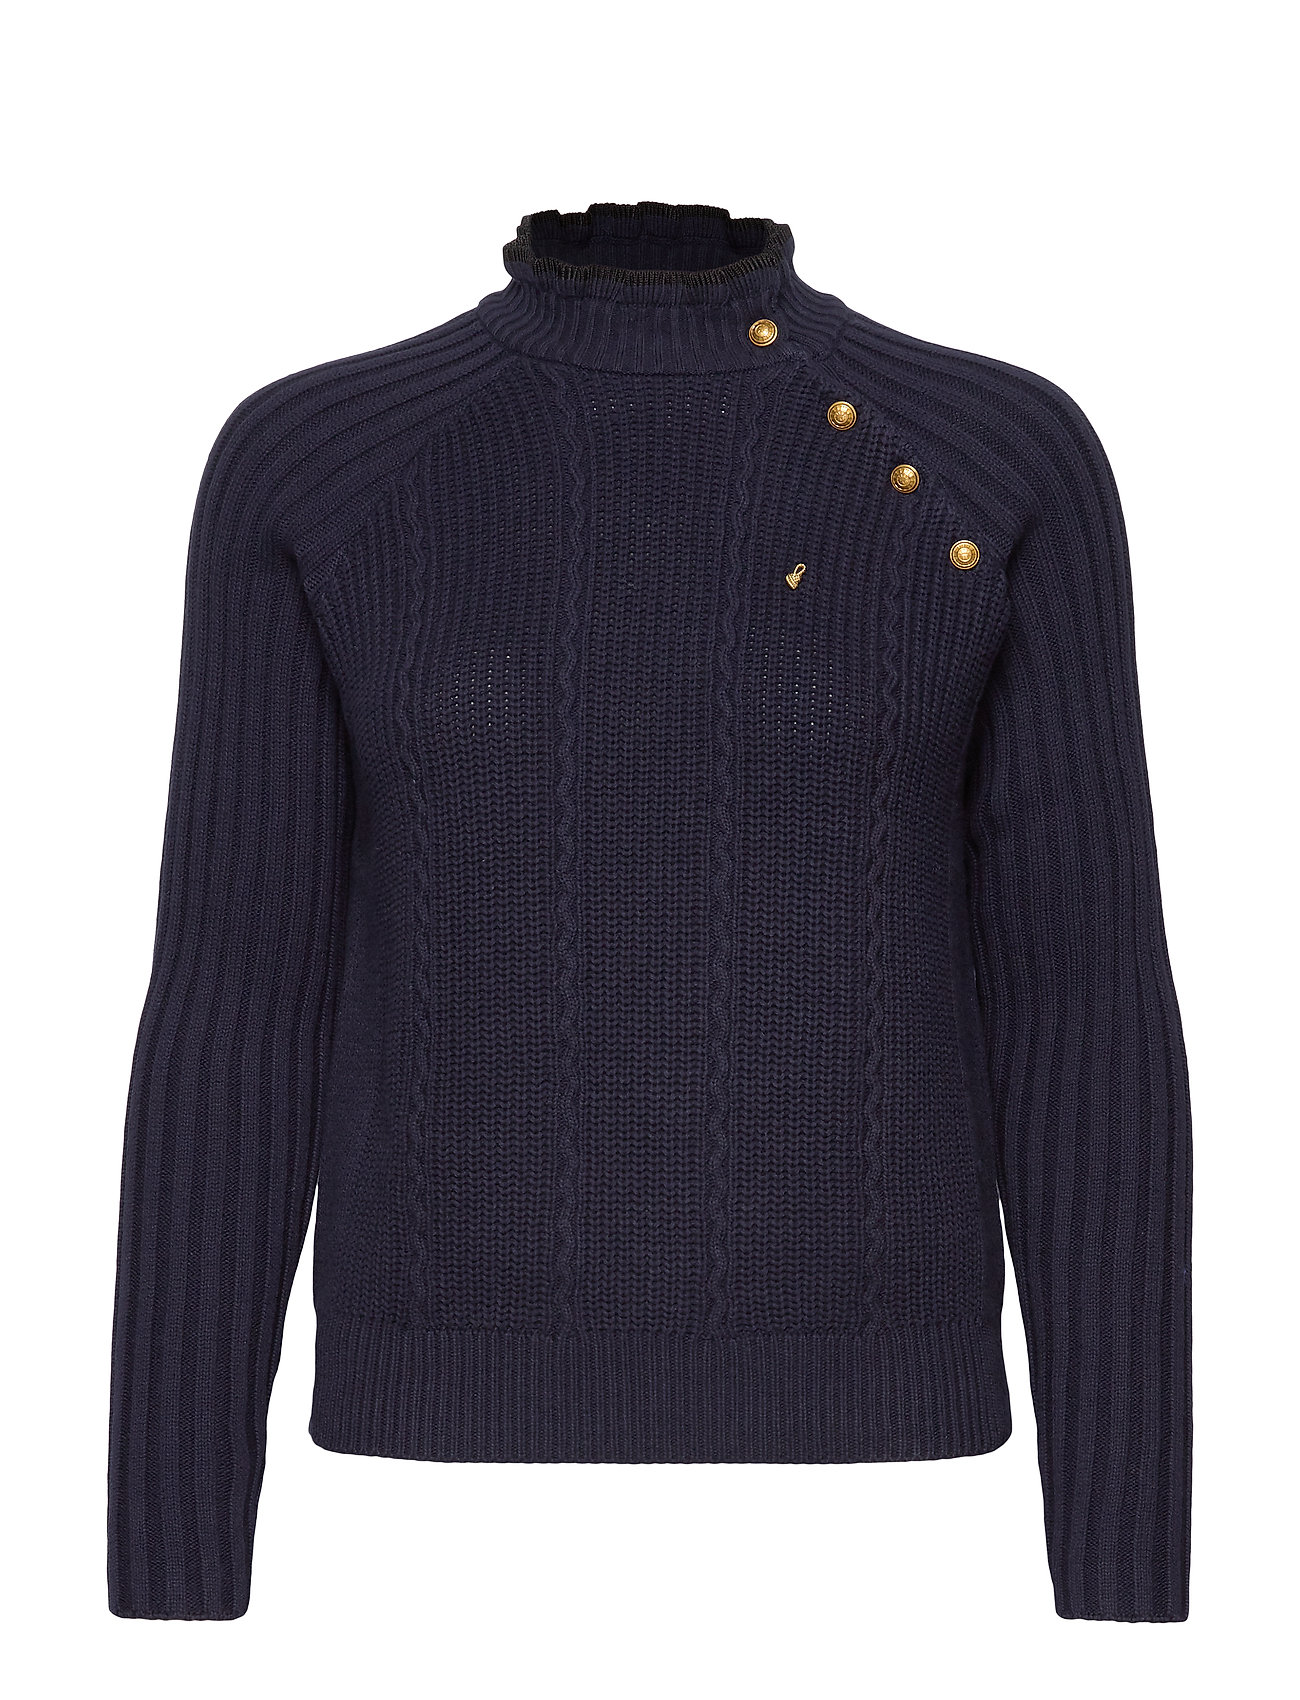 Scotch & Soda Basic pull with button details - NAVY